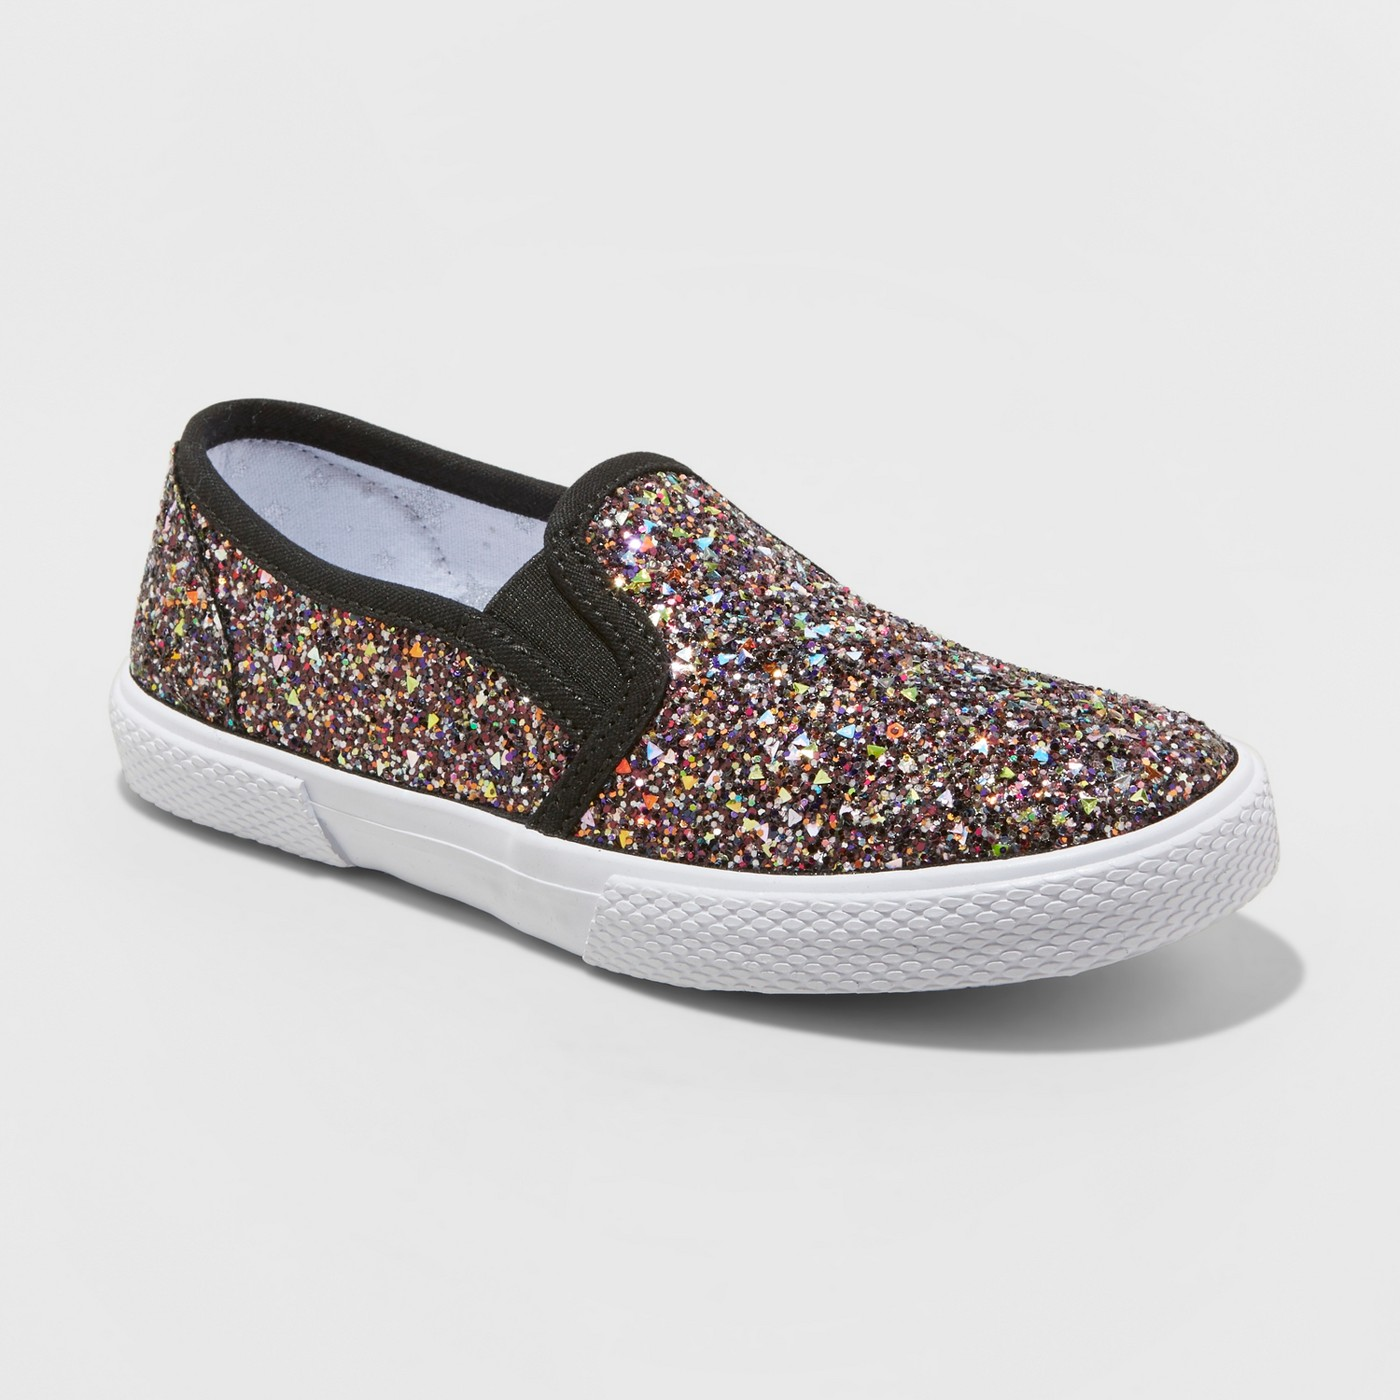 Girls' Glitter Slip-On Sneaker - $10